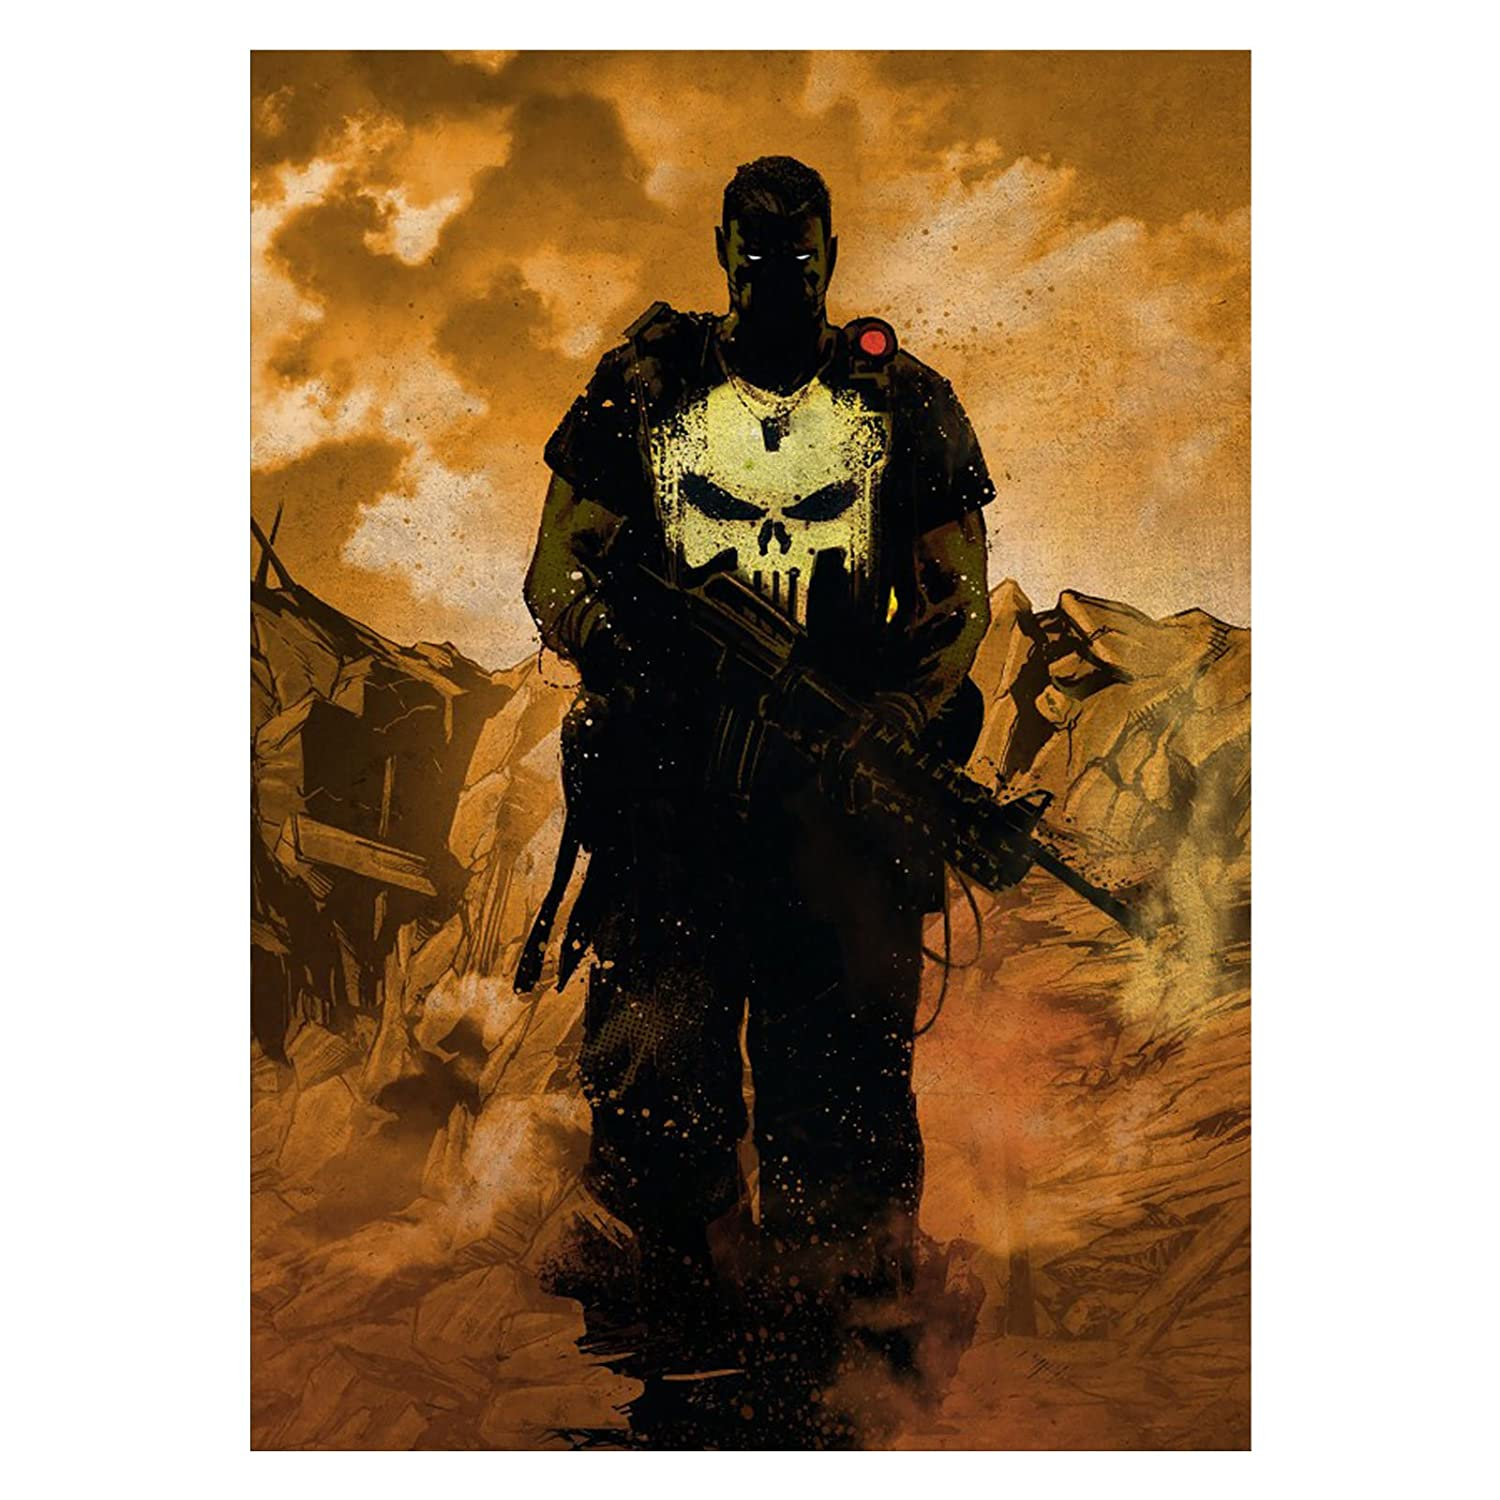 Punisher mural cartel de metal con adhesivo 45x32cm Marvel ...